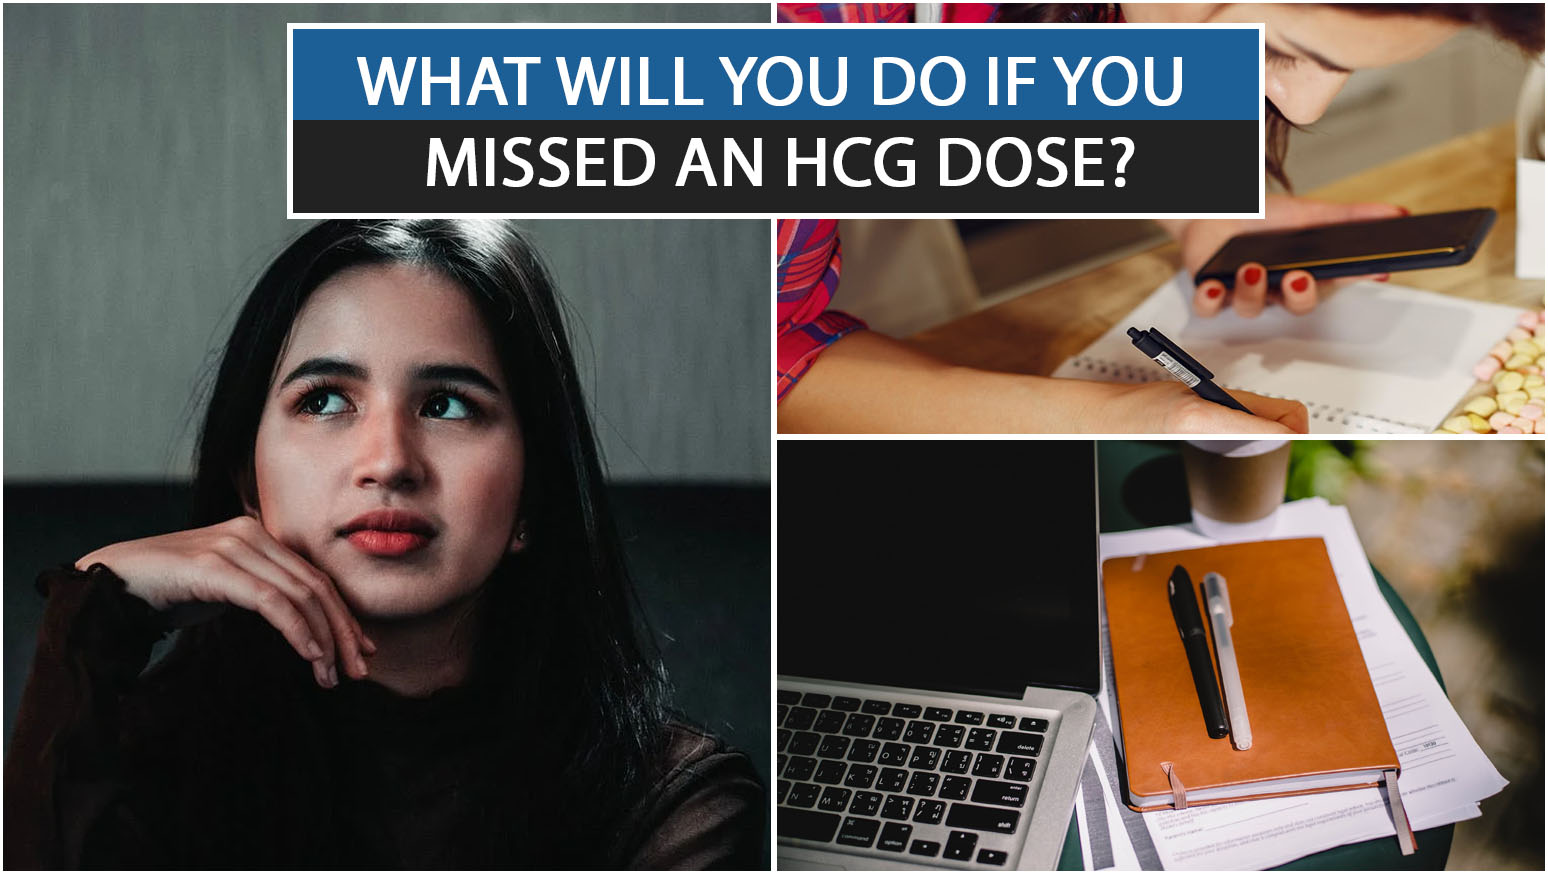 WHAT WILL YOU DO IF YOU MISSED AN HCG DOSE